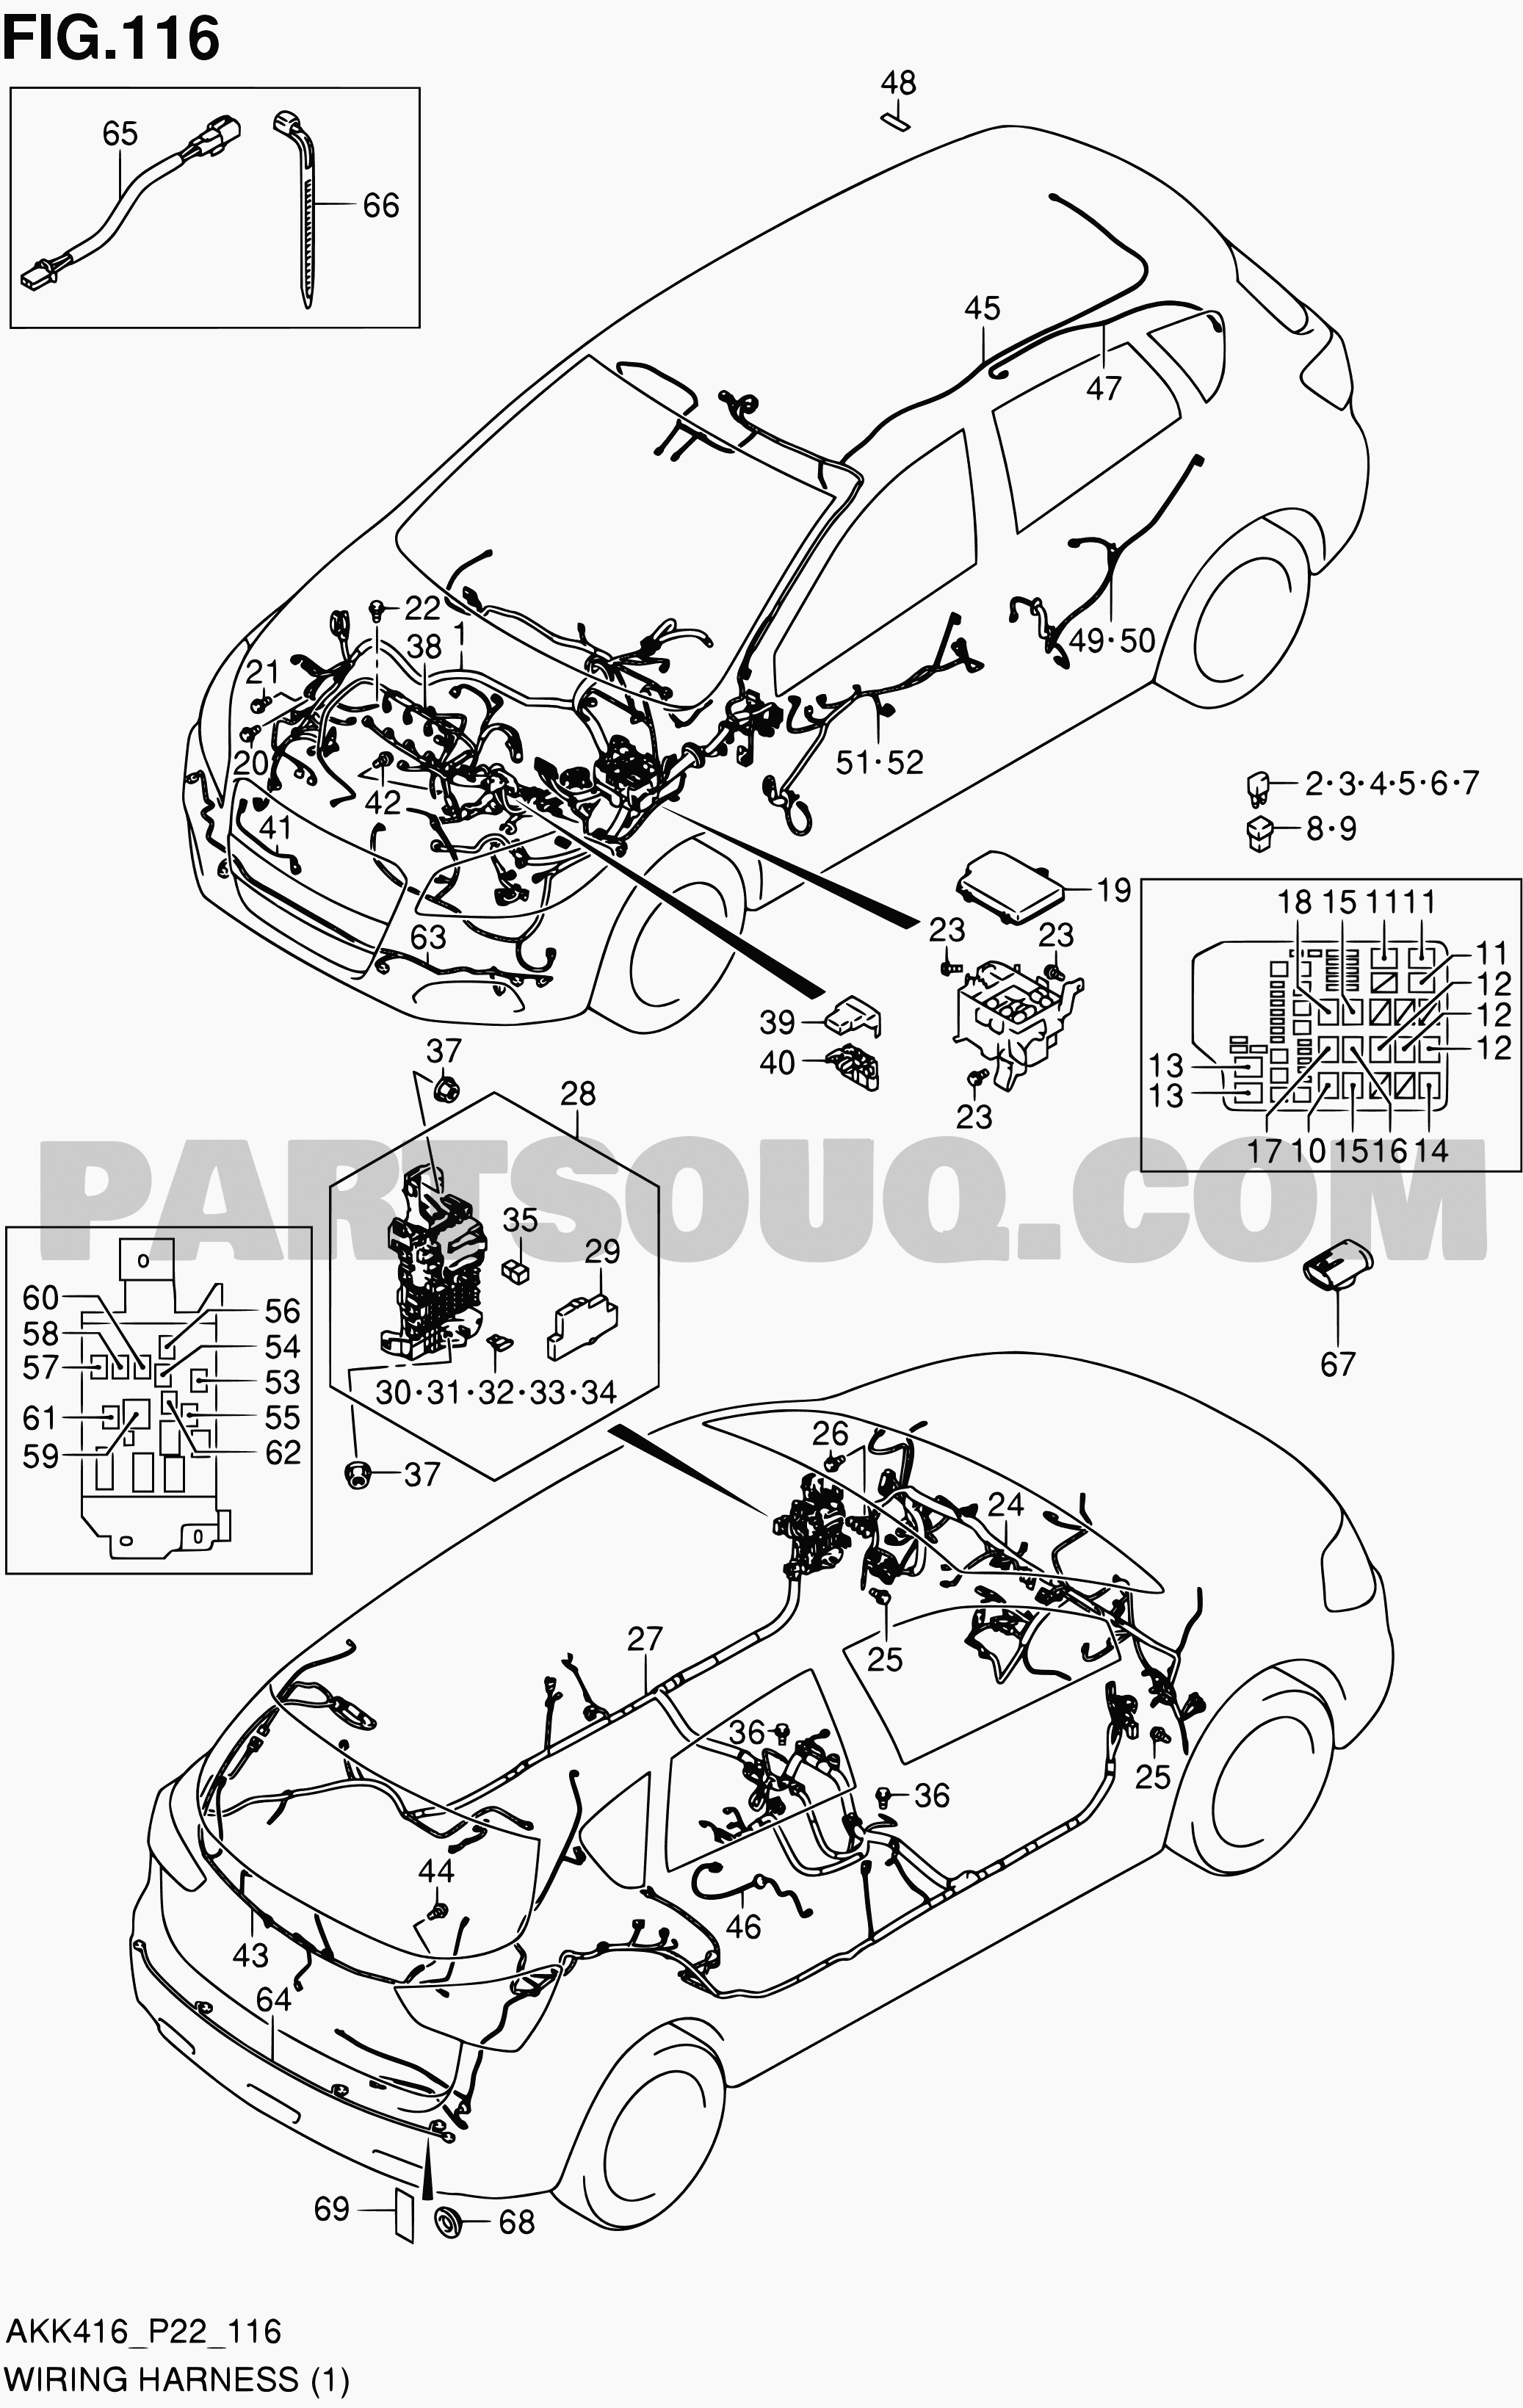 Exterior Car Parts Diagram 116 Wiring Harness M16a Lhd Sx4 M16a Akk416 Suzuki Of Exterior Car Parts Diagram